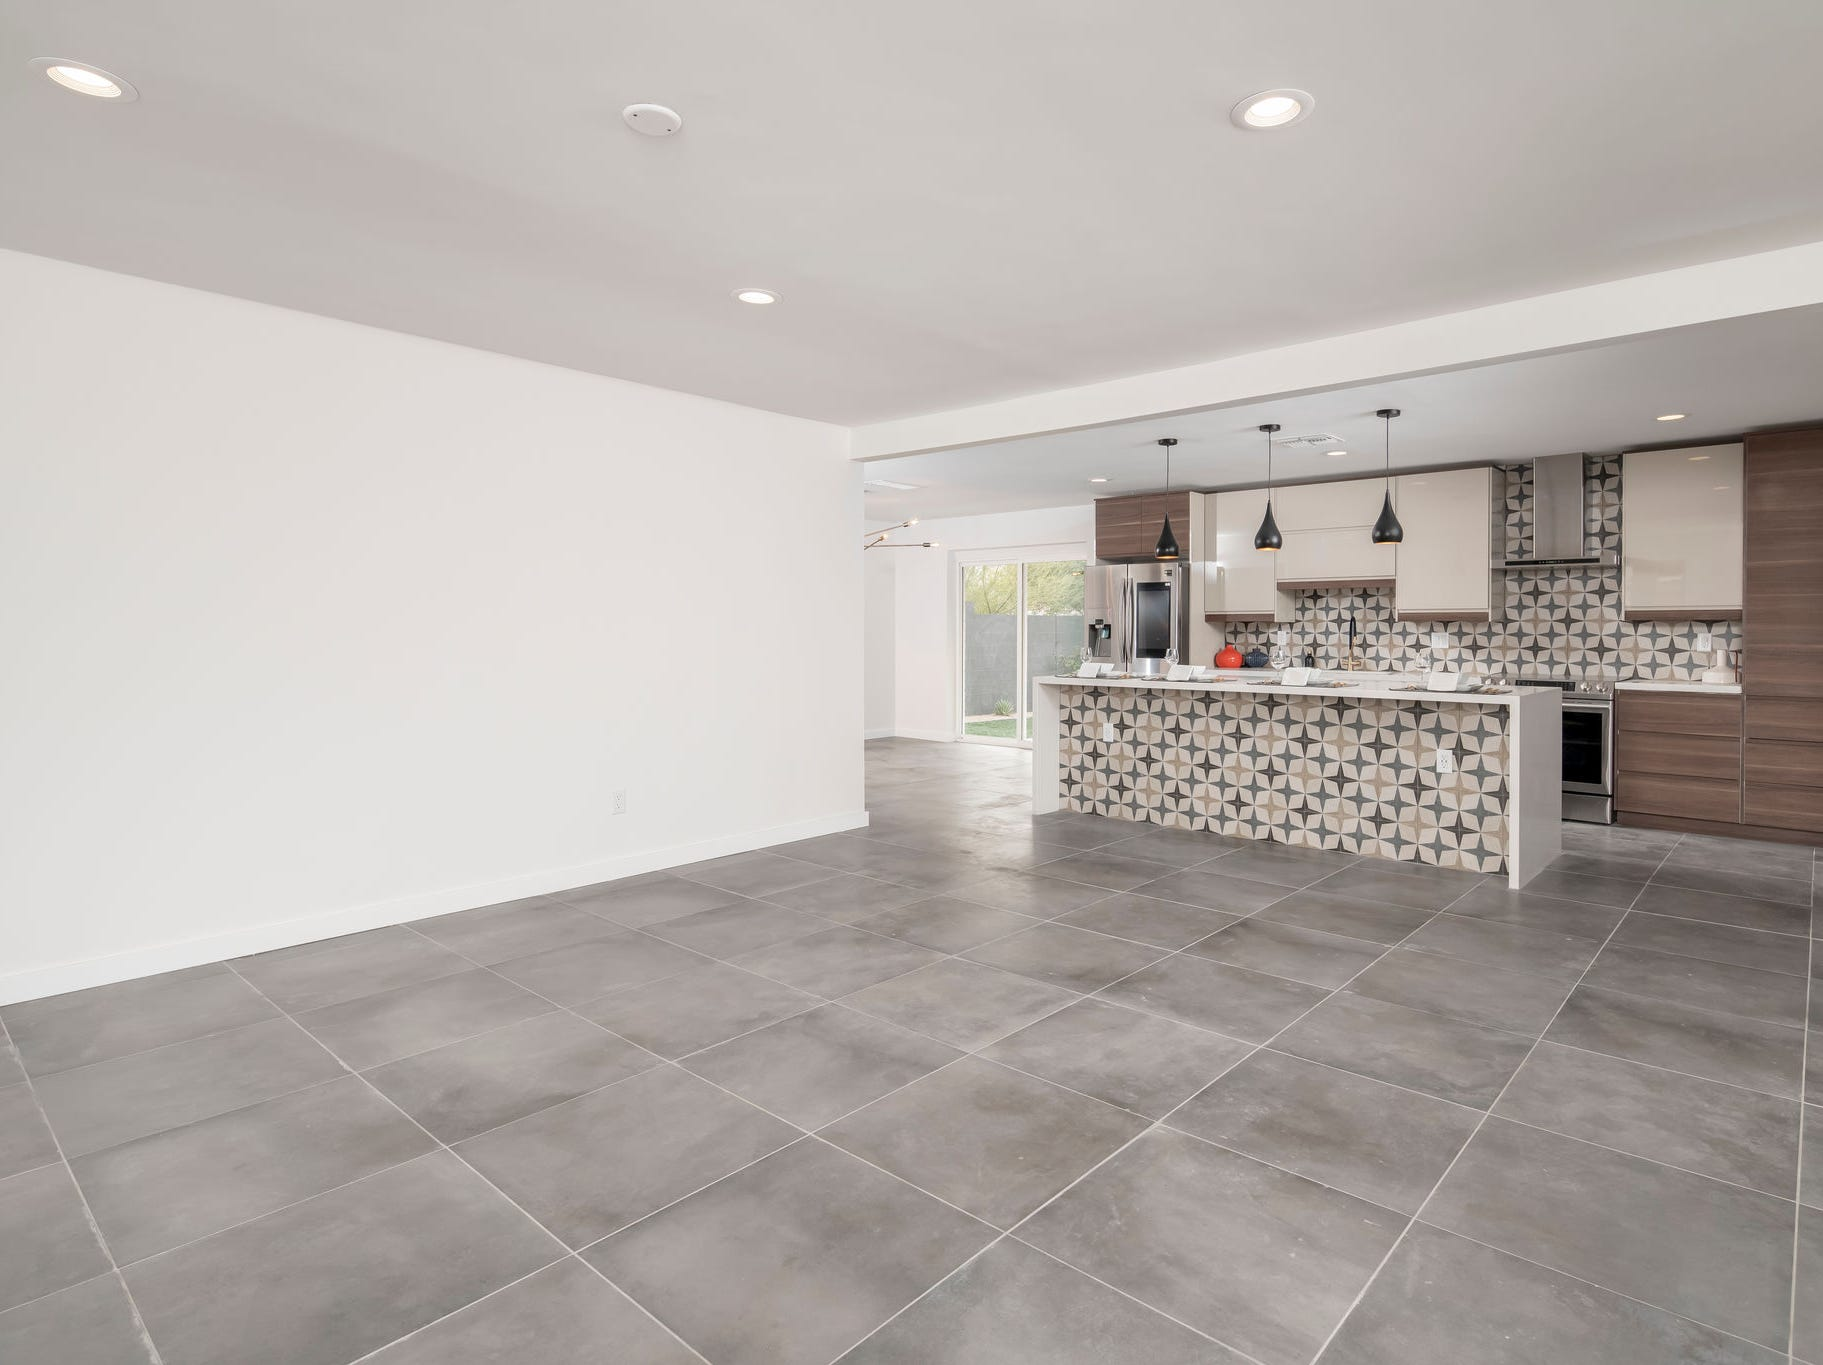 The floor plan was completely opened up during the renovation and the kitchen was pivoted to the back wall.